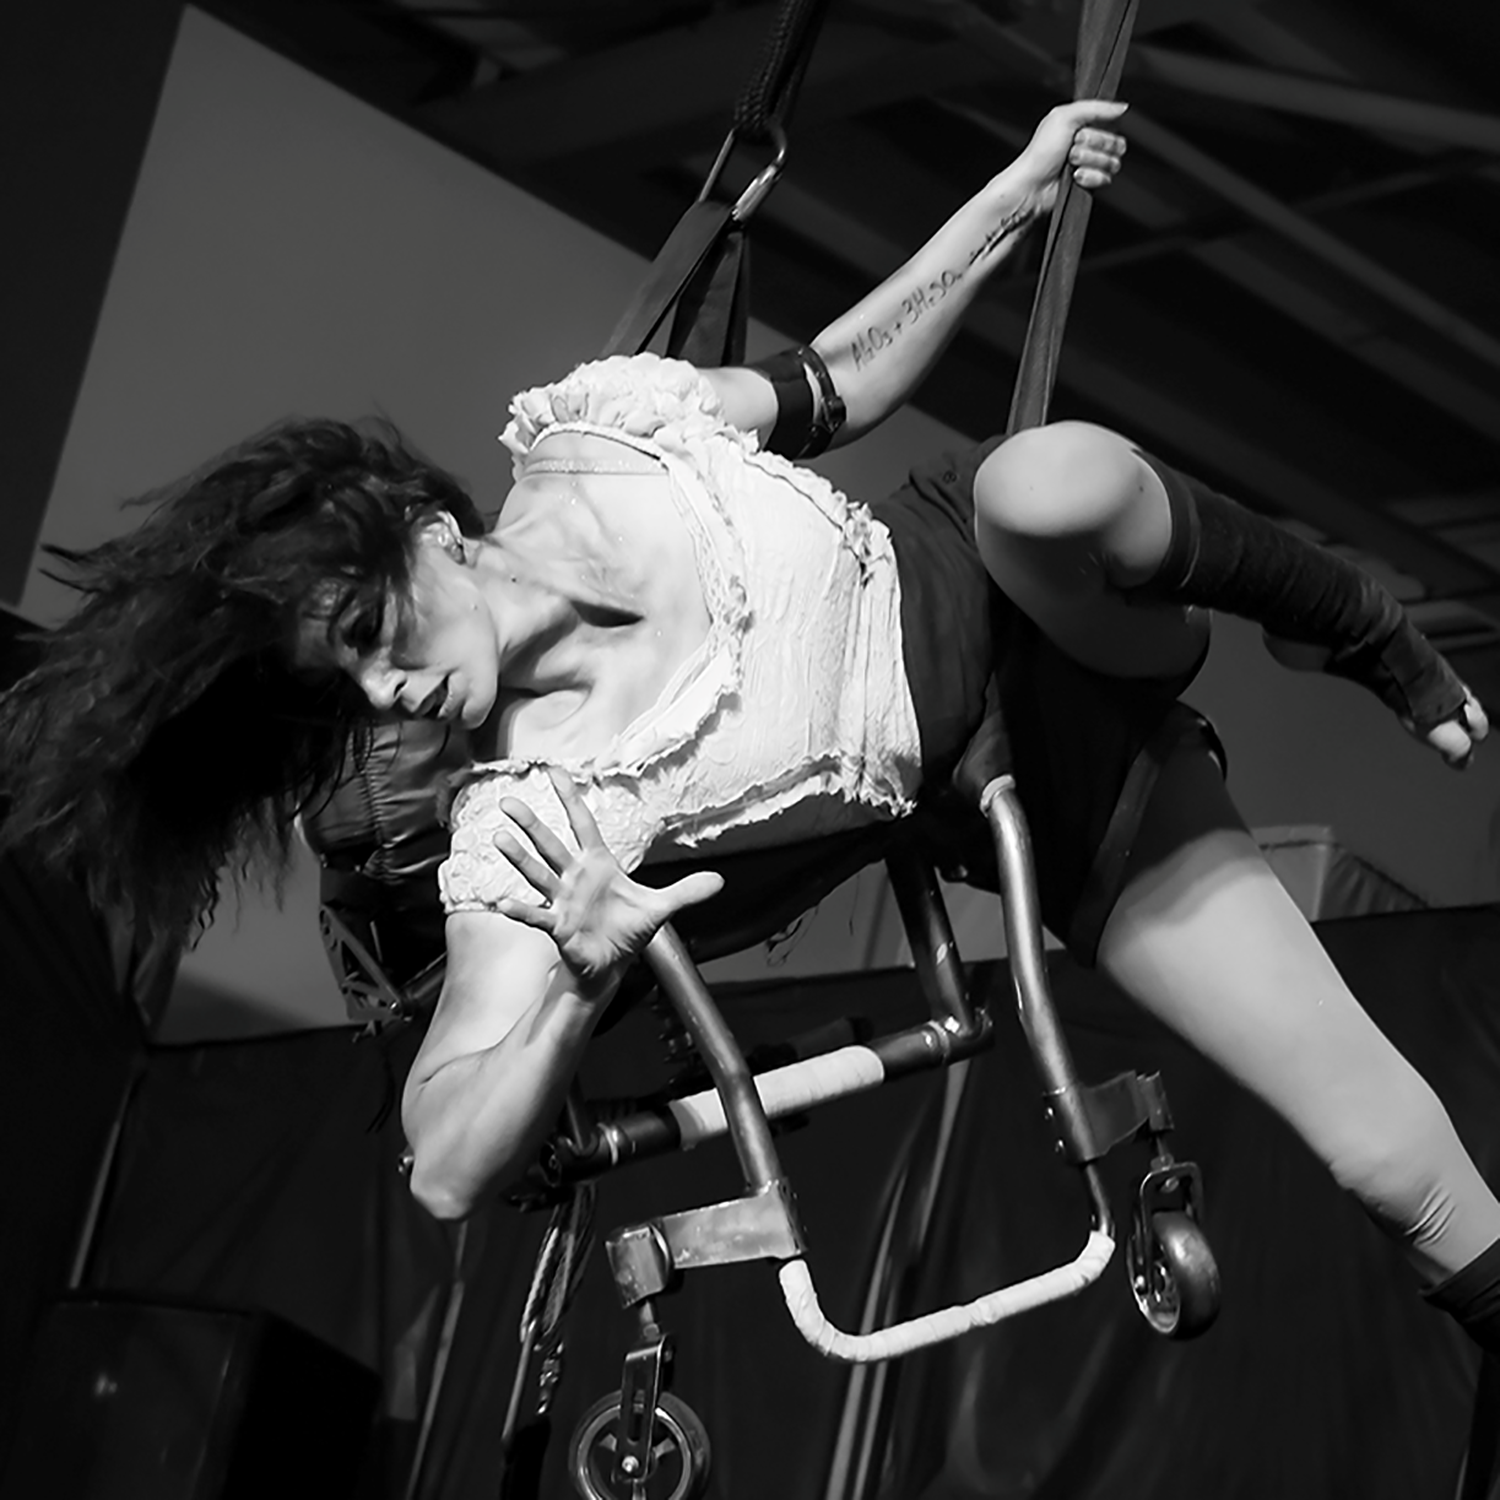 Lauren Watson pictured in black and white, performing an aerial routine with her wheelchair.